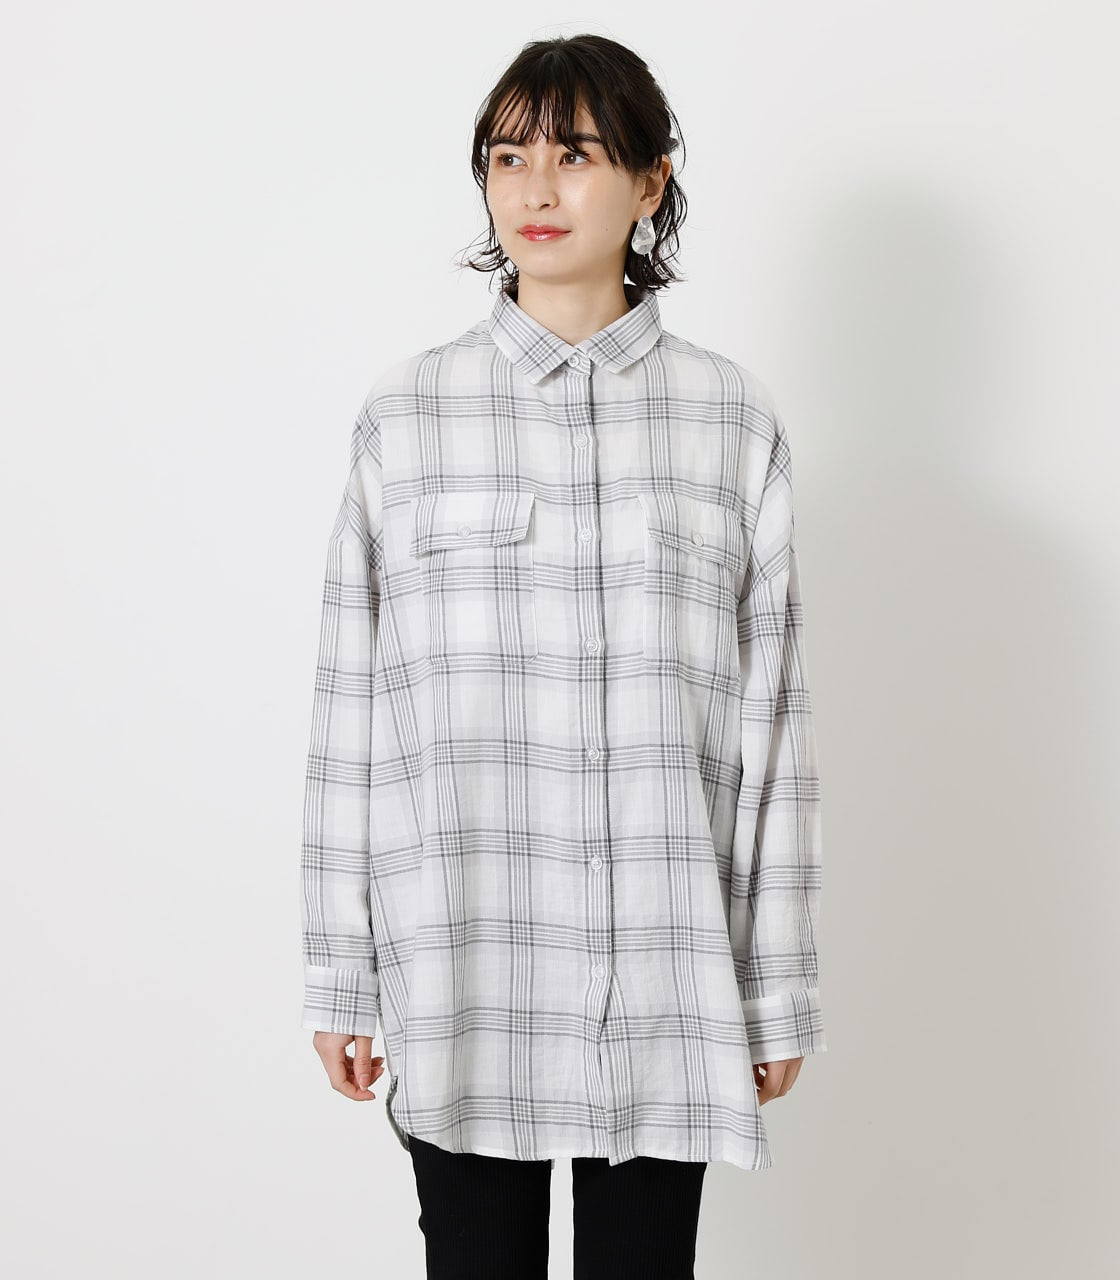 CHECK LOOSE SHIRT/チェックルーズシャツ 詳細画像 柄WHT 4